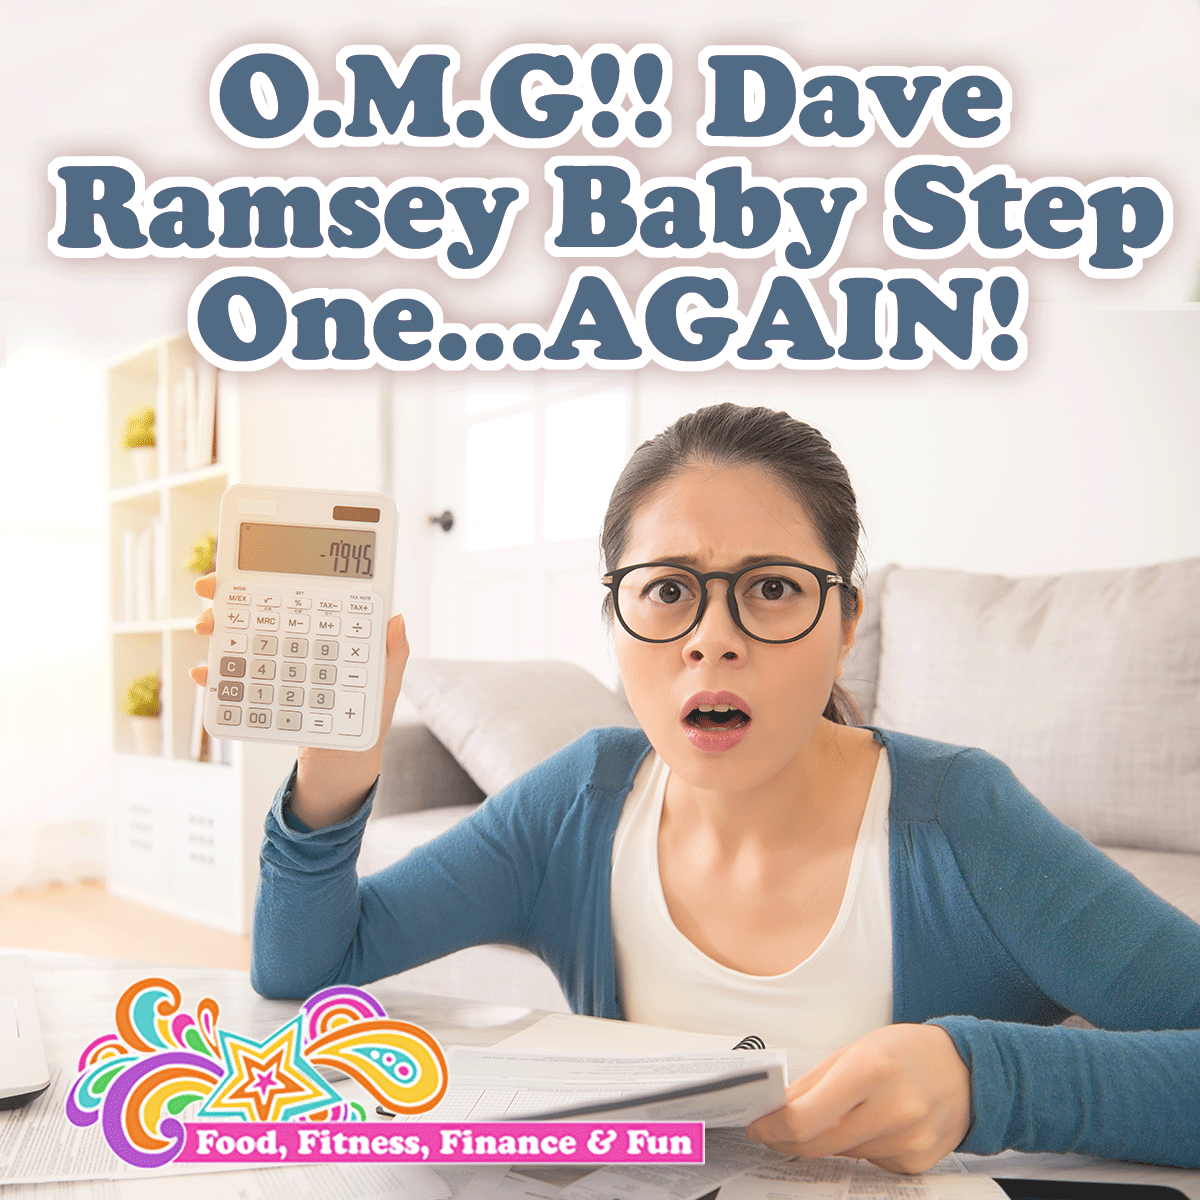 O.M.G!! Dave Ramsey Baby Step One…AGAIN!